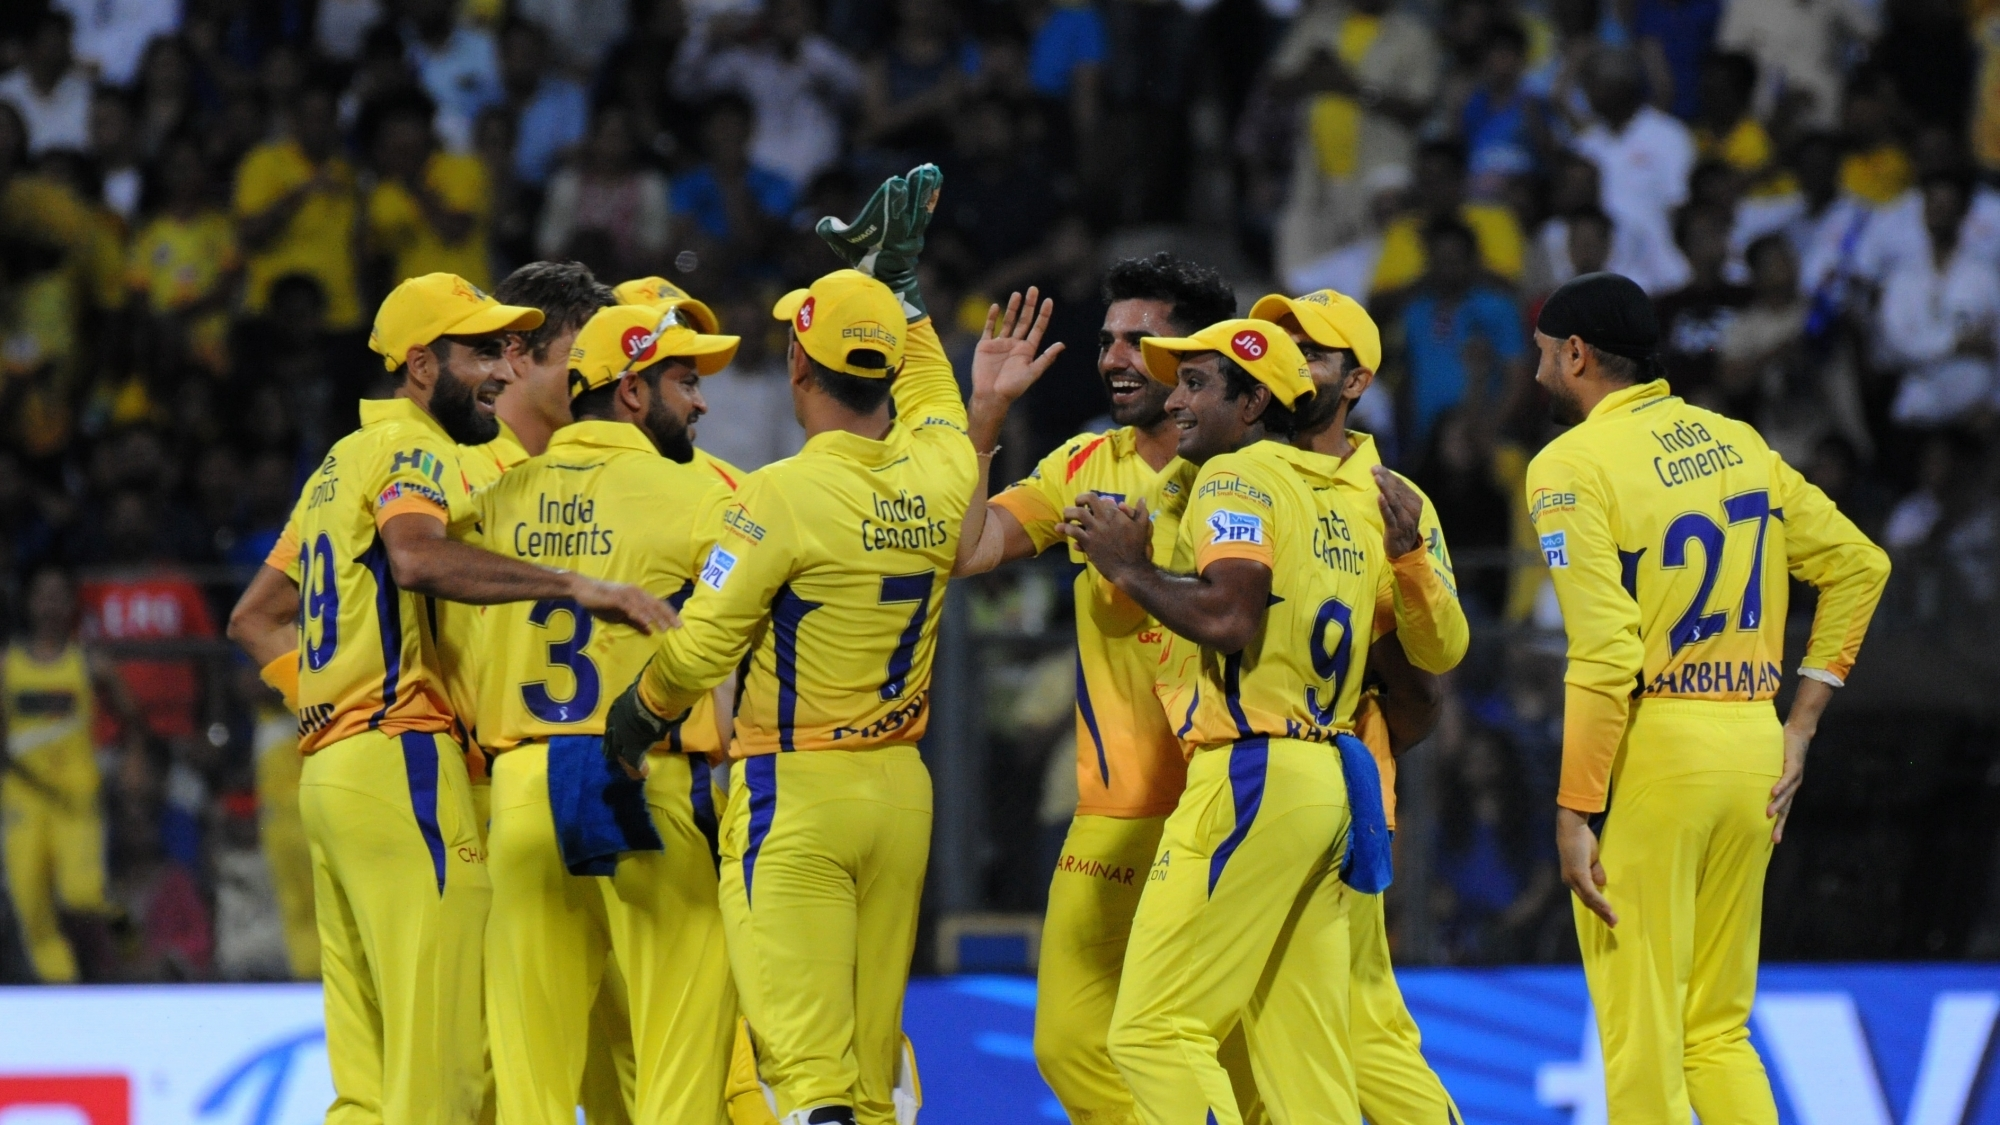 IPL 2018: CSK given four cities to choose from as their next home ground after Cauvery controversy